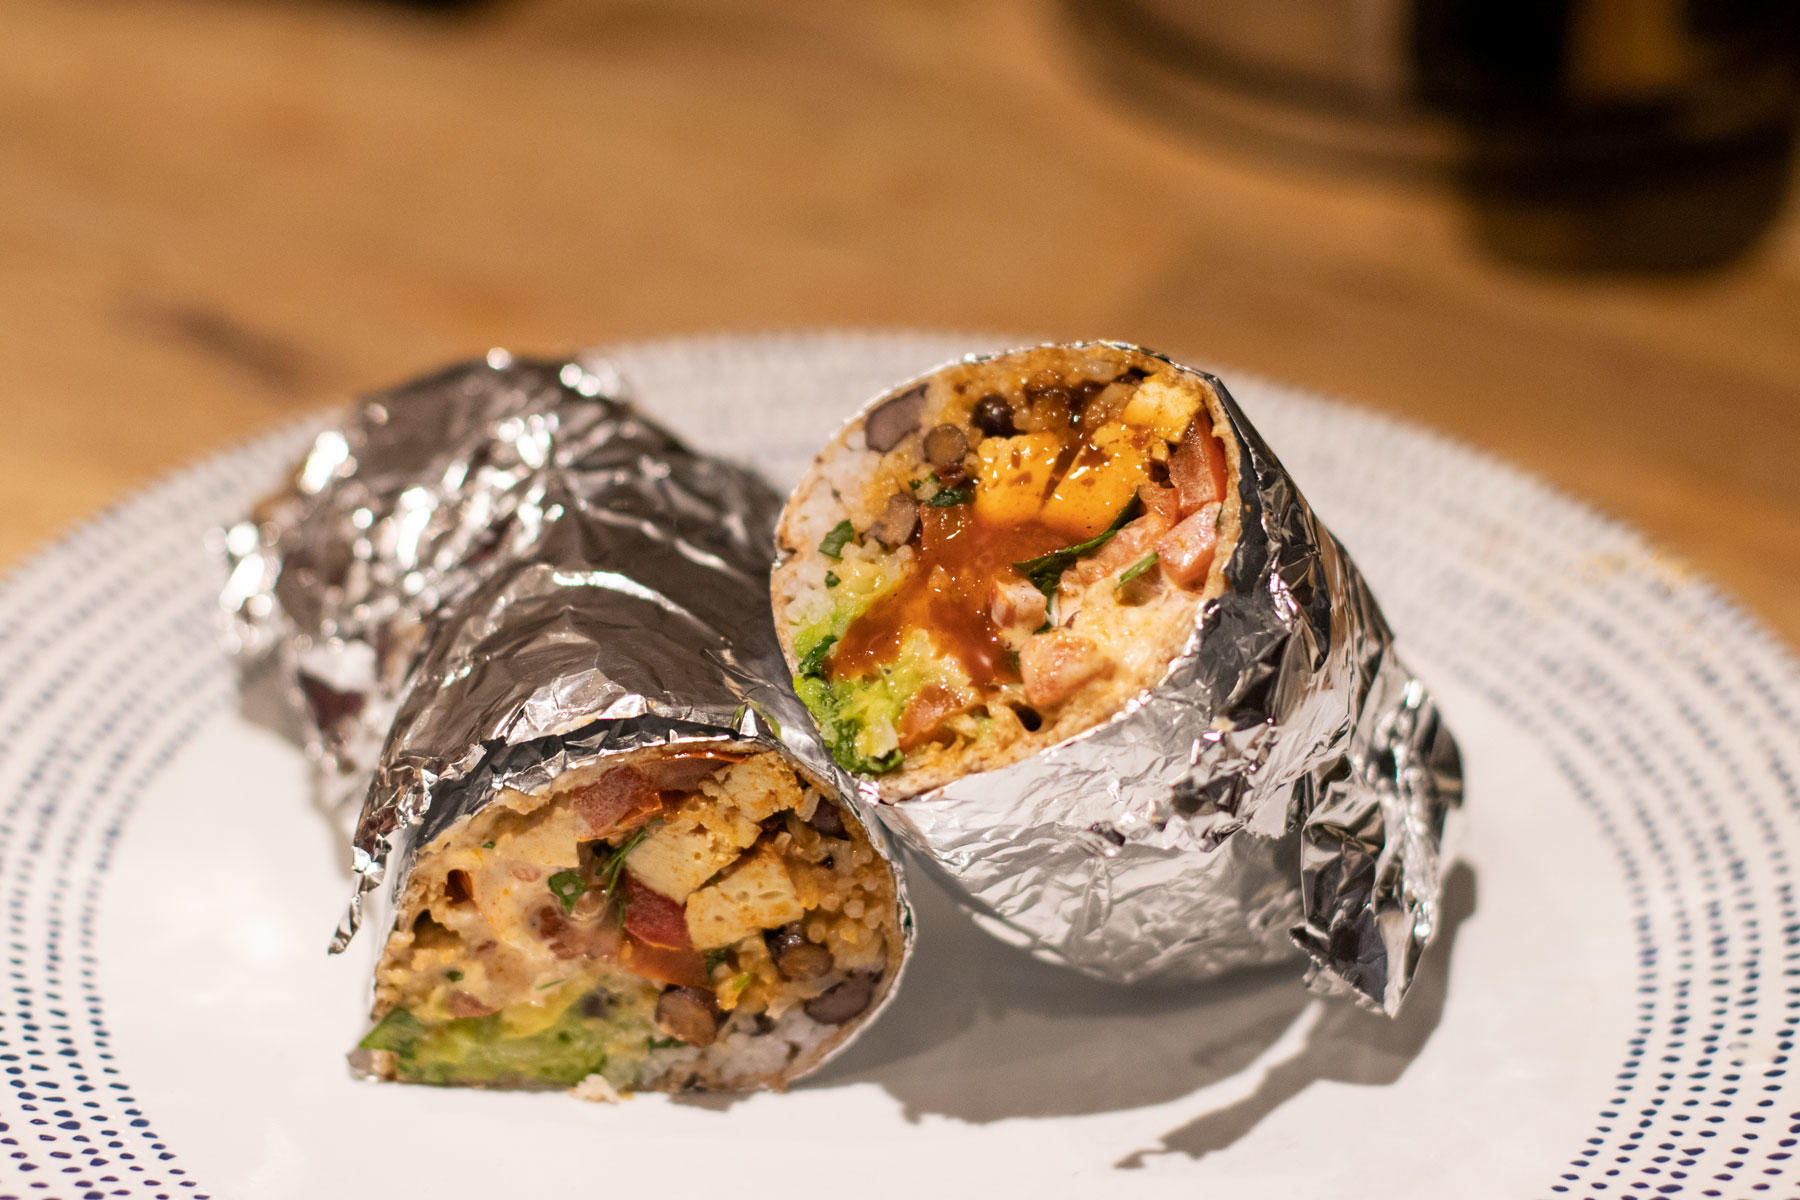 Smoked Tofu Black Bean Vegan Burritos Sarah Thain